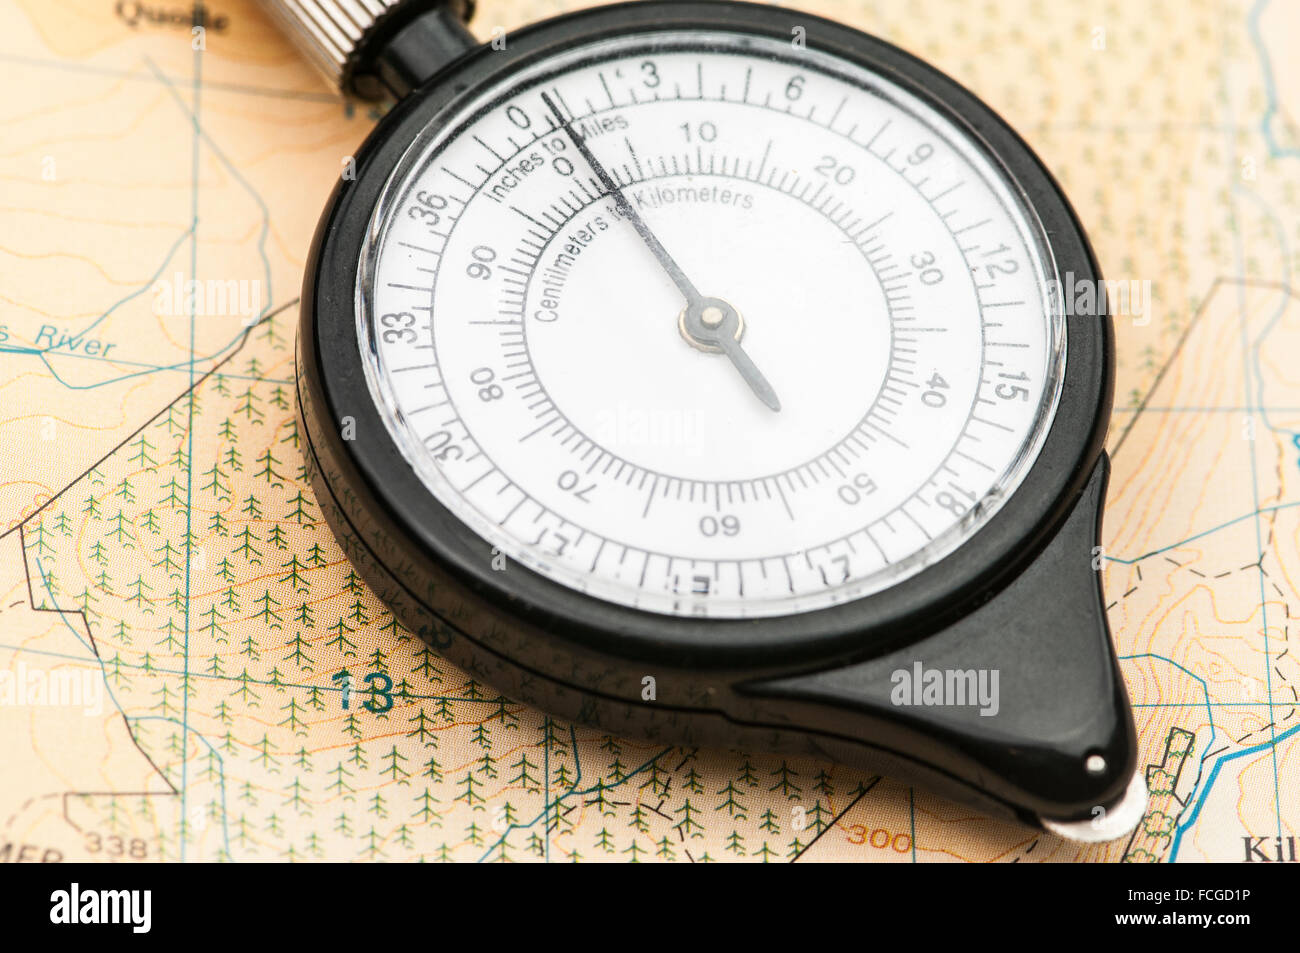 Map wheel on a map, used for measuring distances with different scales. - Stock Image